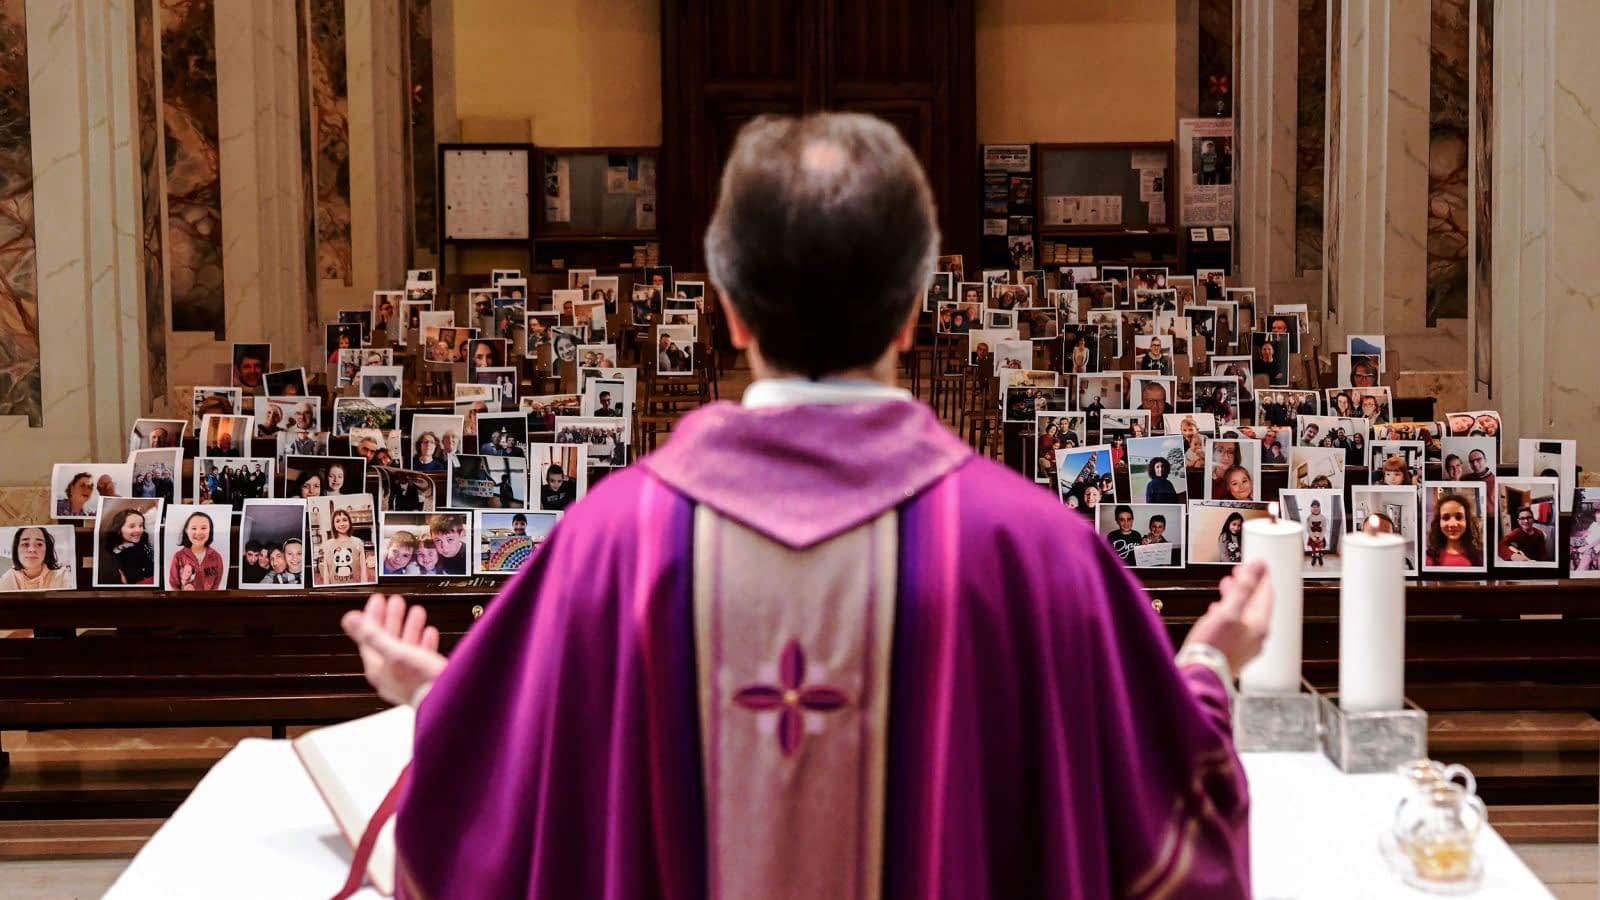 Giuseppe Corbari holds Sunday Mass